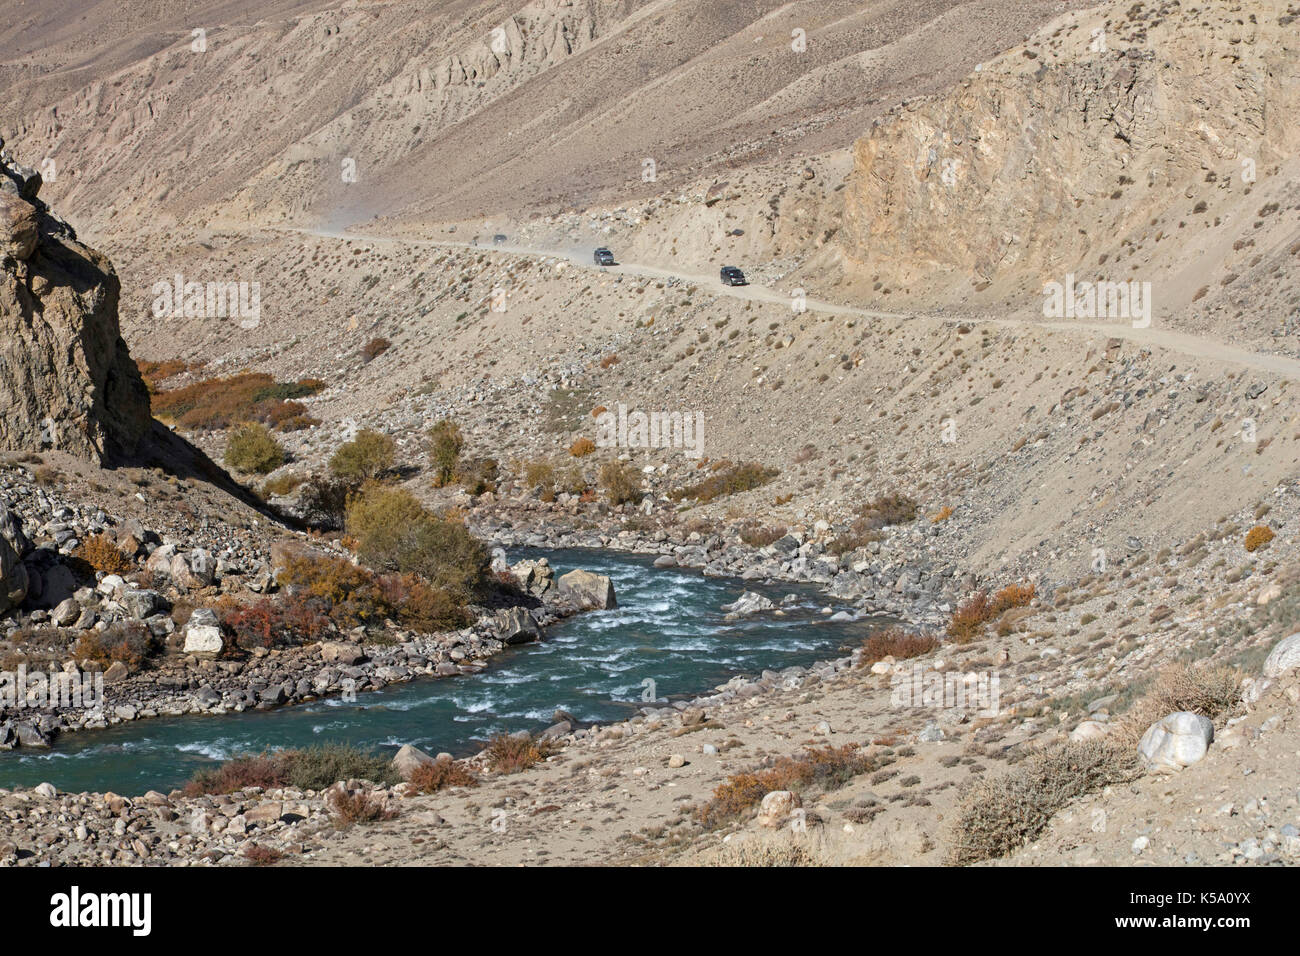 4WD vehicles driving on the Pamir Highway / M41 along the Pamir River in the Gorno-Badakhshan province, Tajikistan - Stock Image